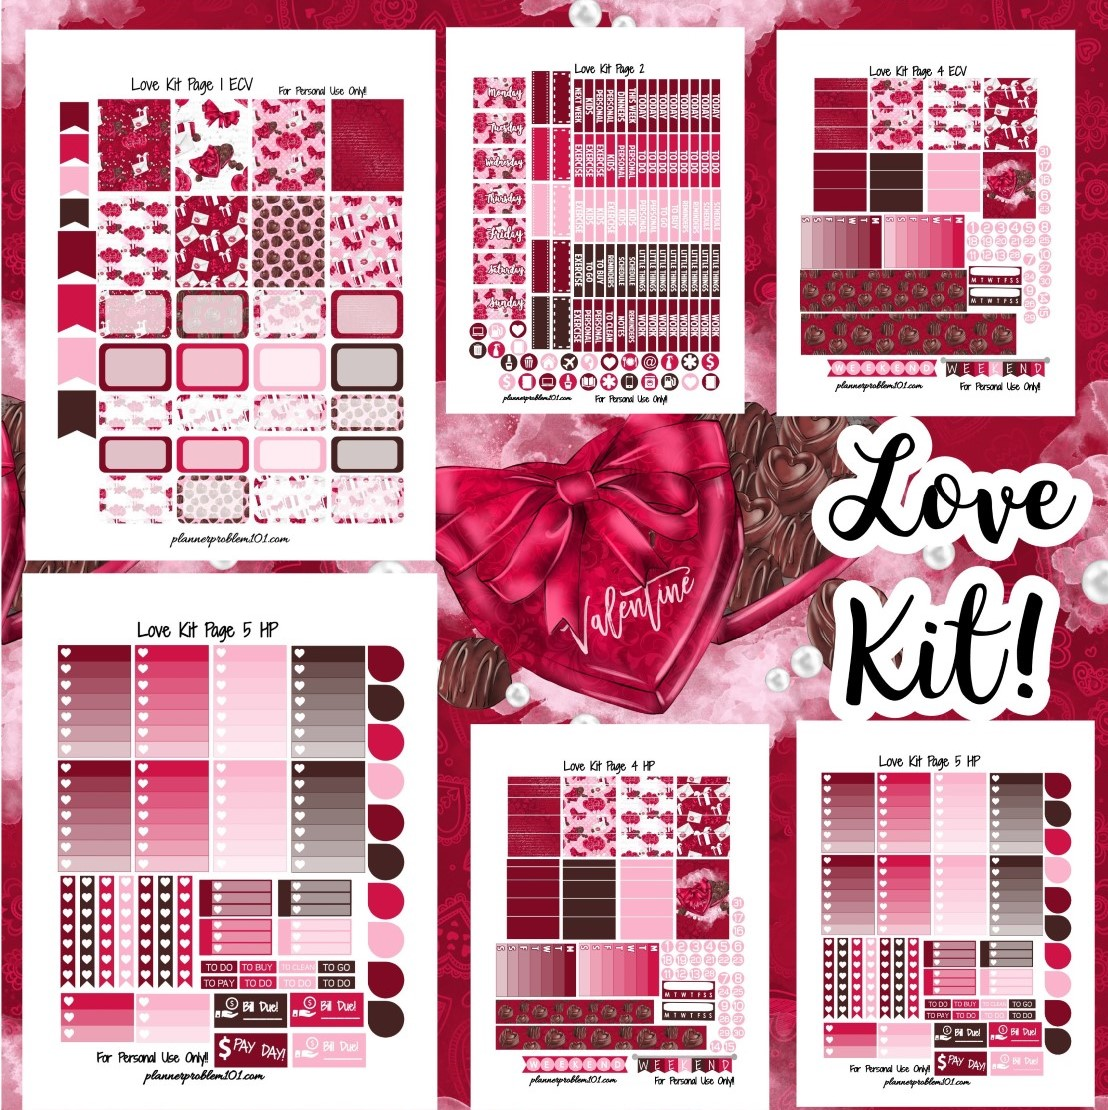 Love Kit! | Free Printable Planner Stickers – PlannerProblem